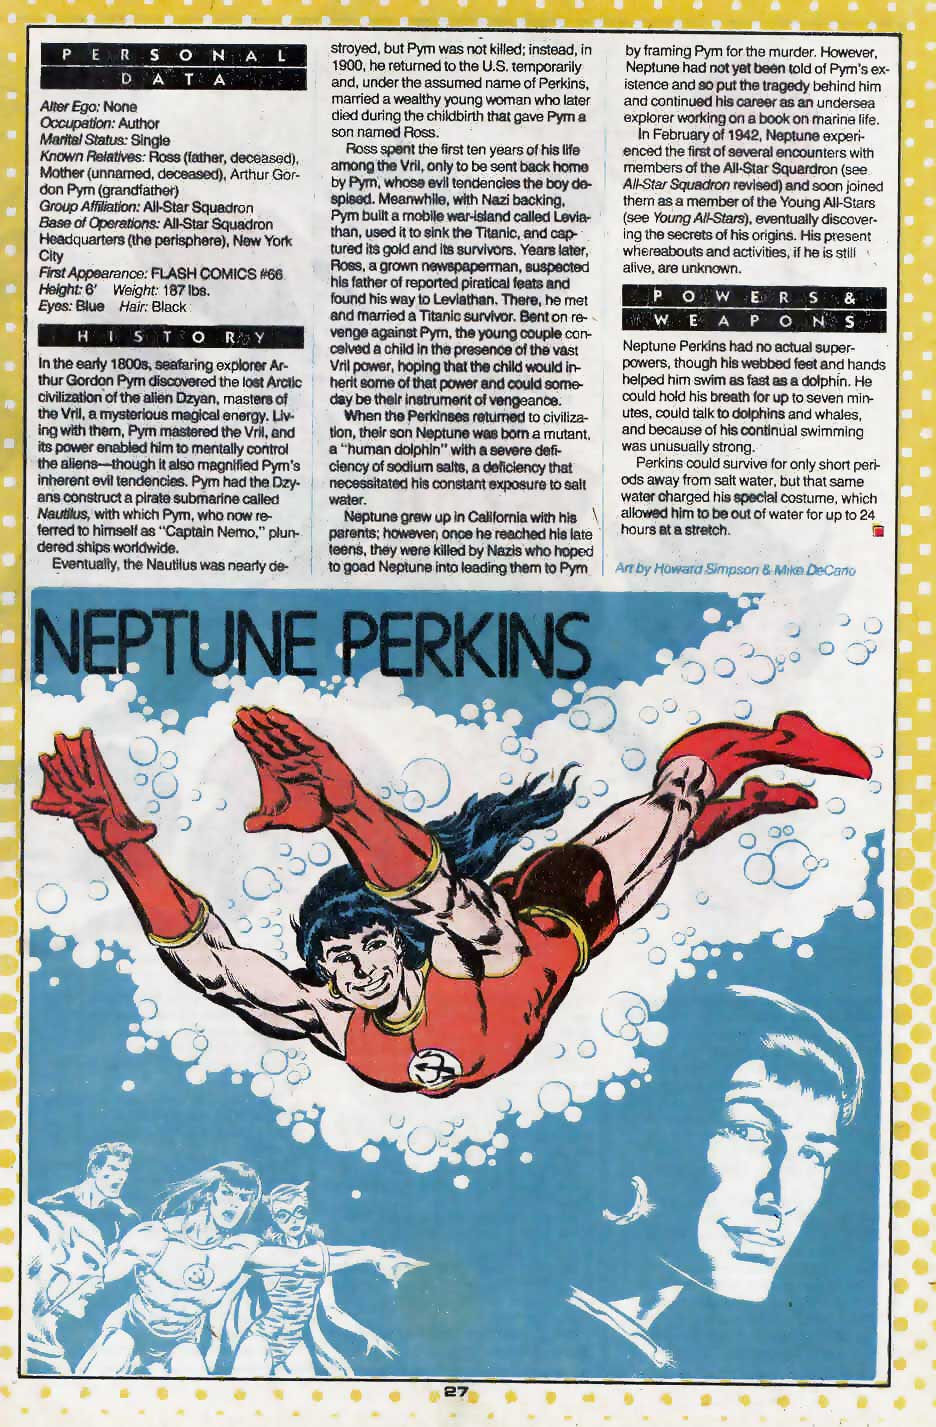 Who's Who Update 88 #2 Neptune Perkins by Howard Simpson and Mike DeCarlo